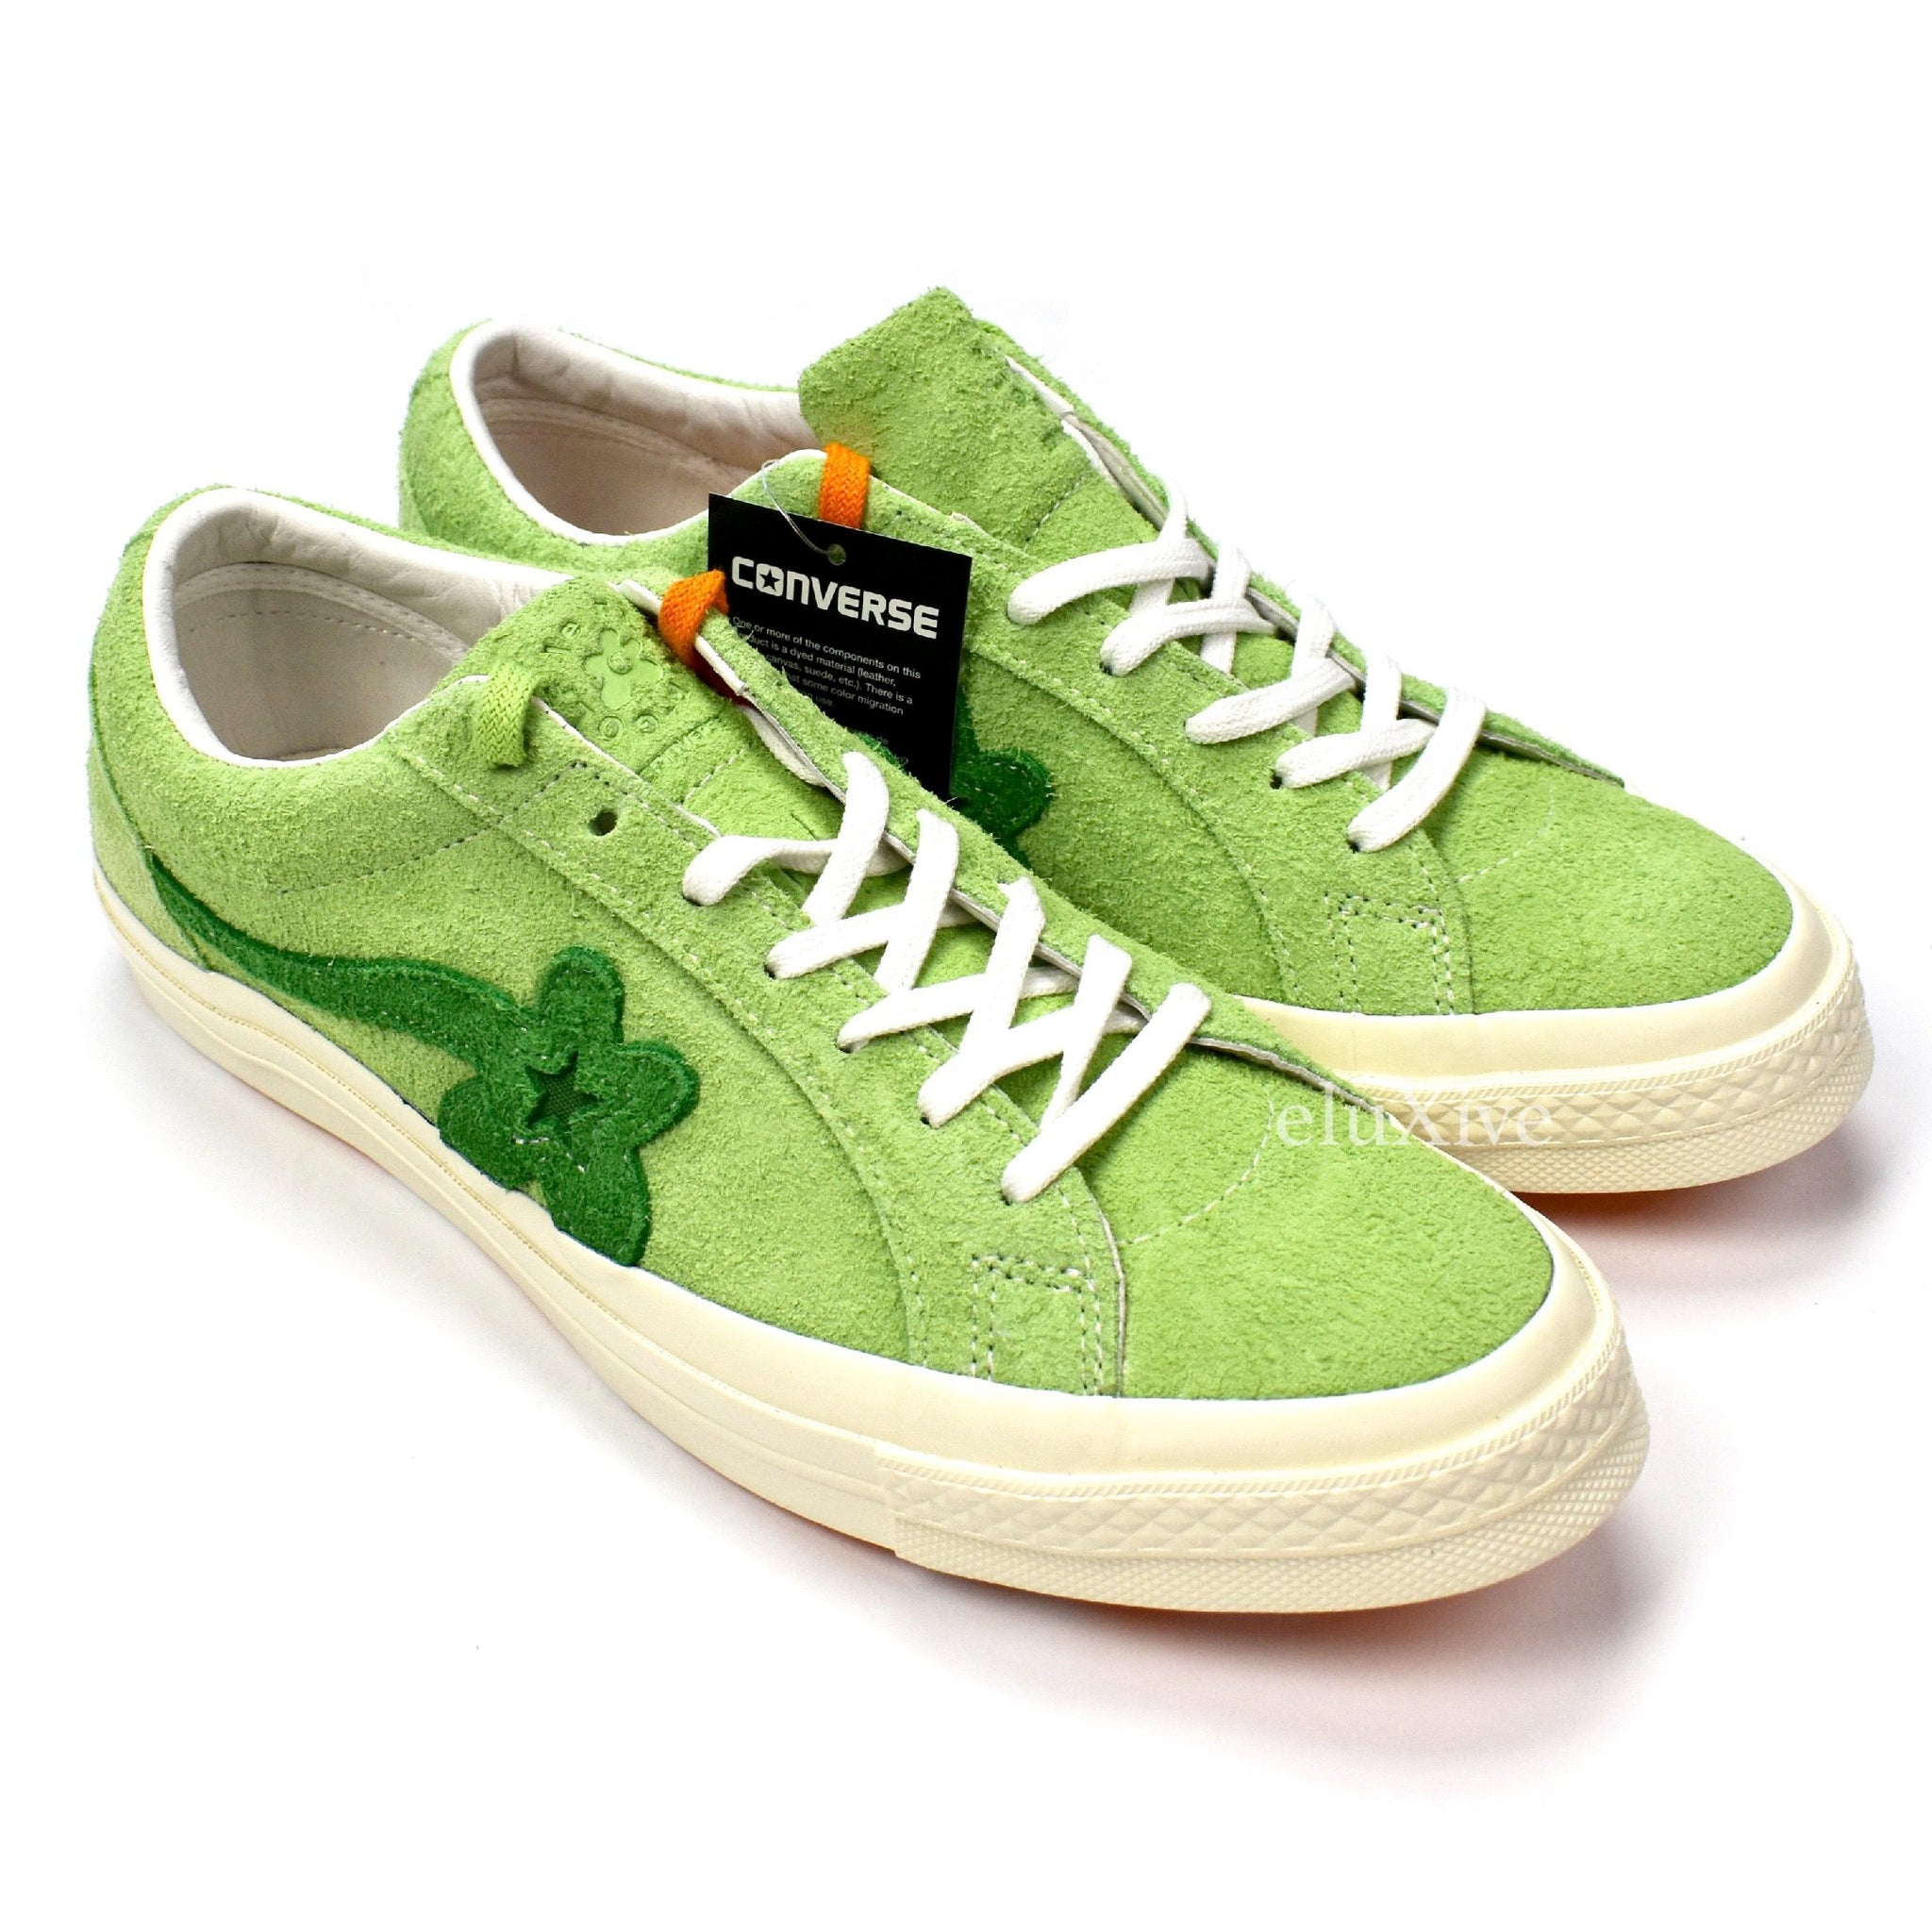 99d2bc937d1a Converse x Golf Wang - Lime Green  Golf Le Fleur  One Star Sneakers ...